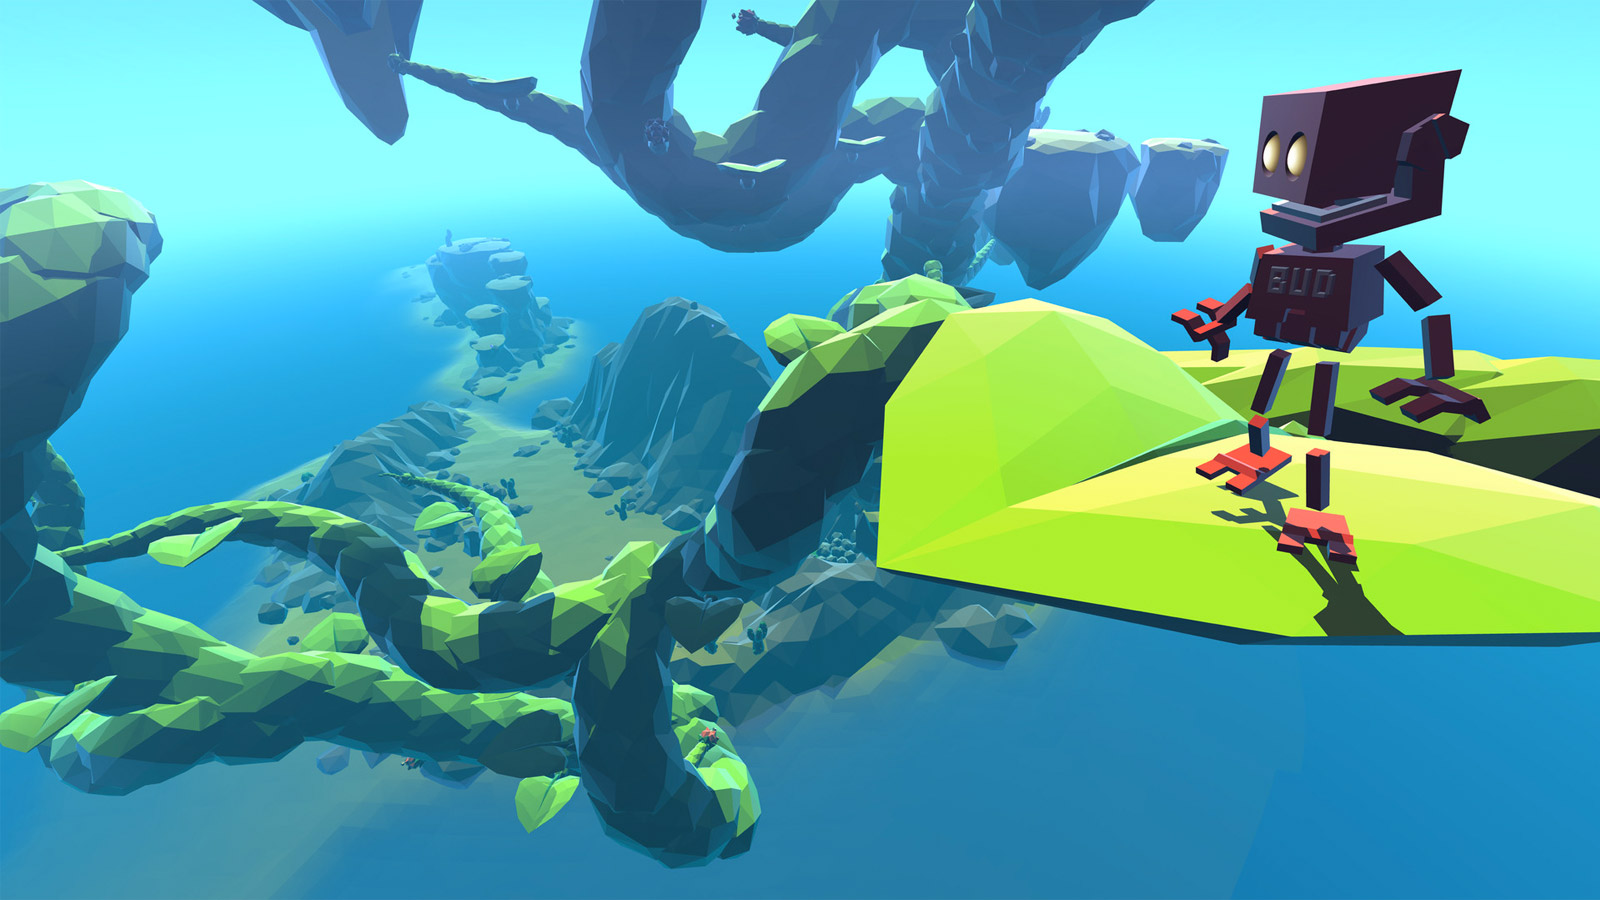 Ubisoft reveals a weird little game about robots and plants called Grow Home